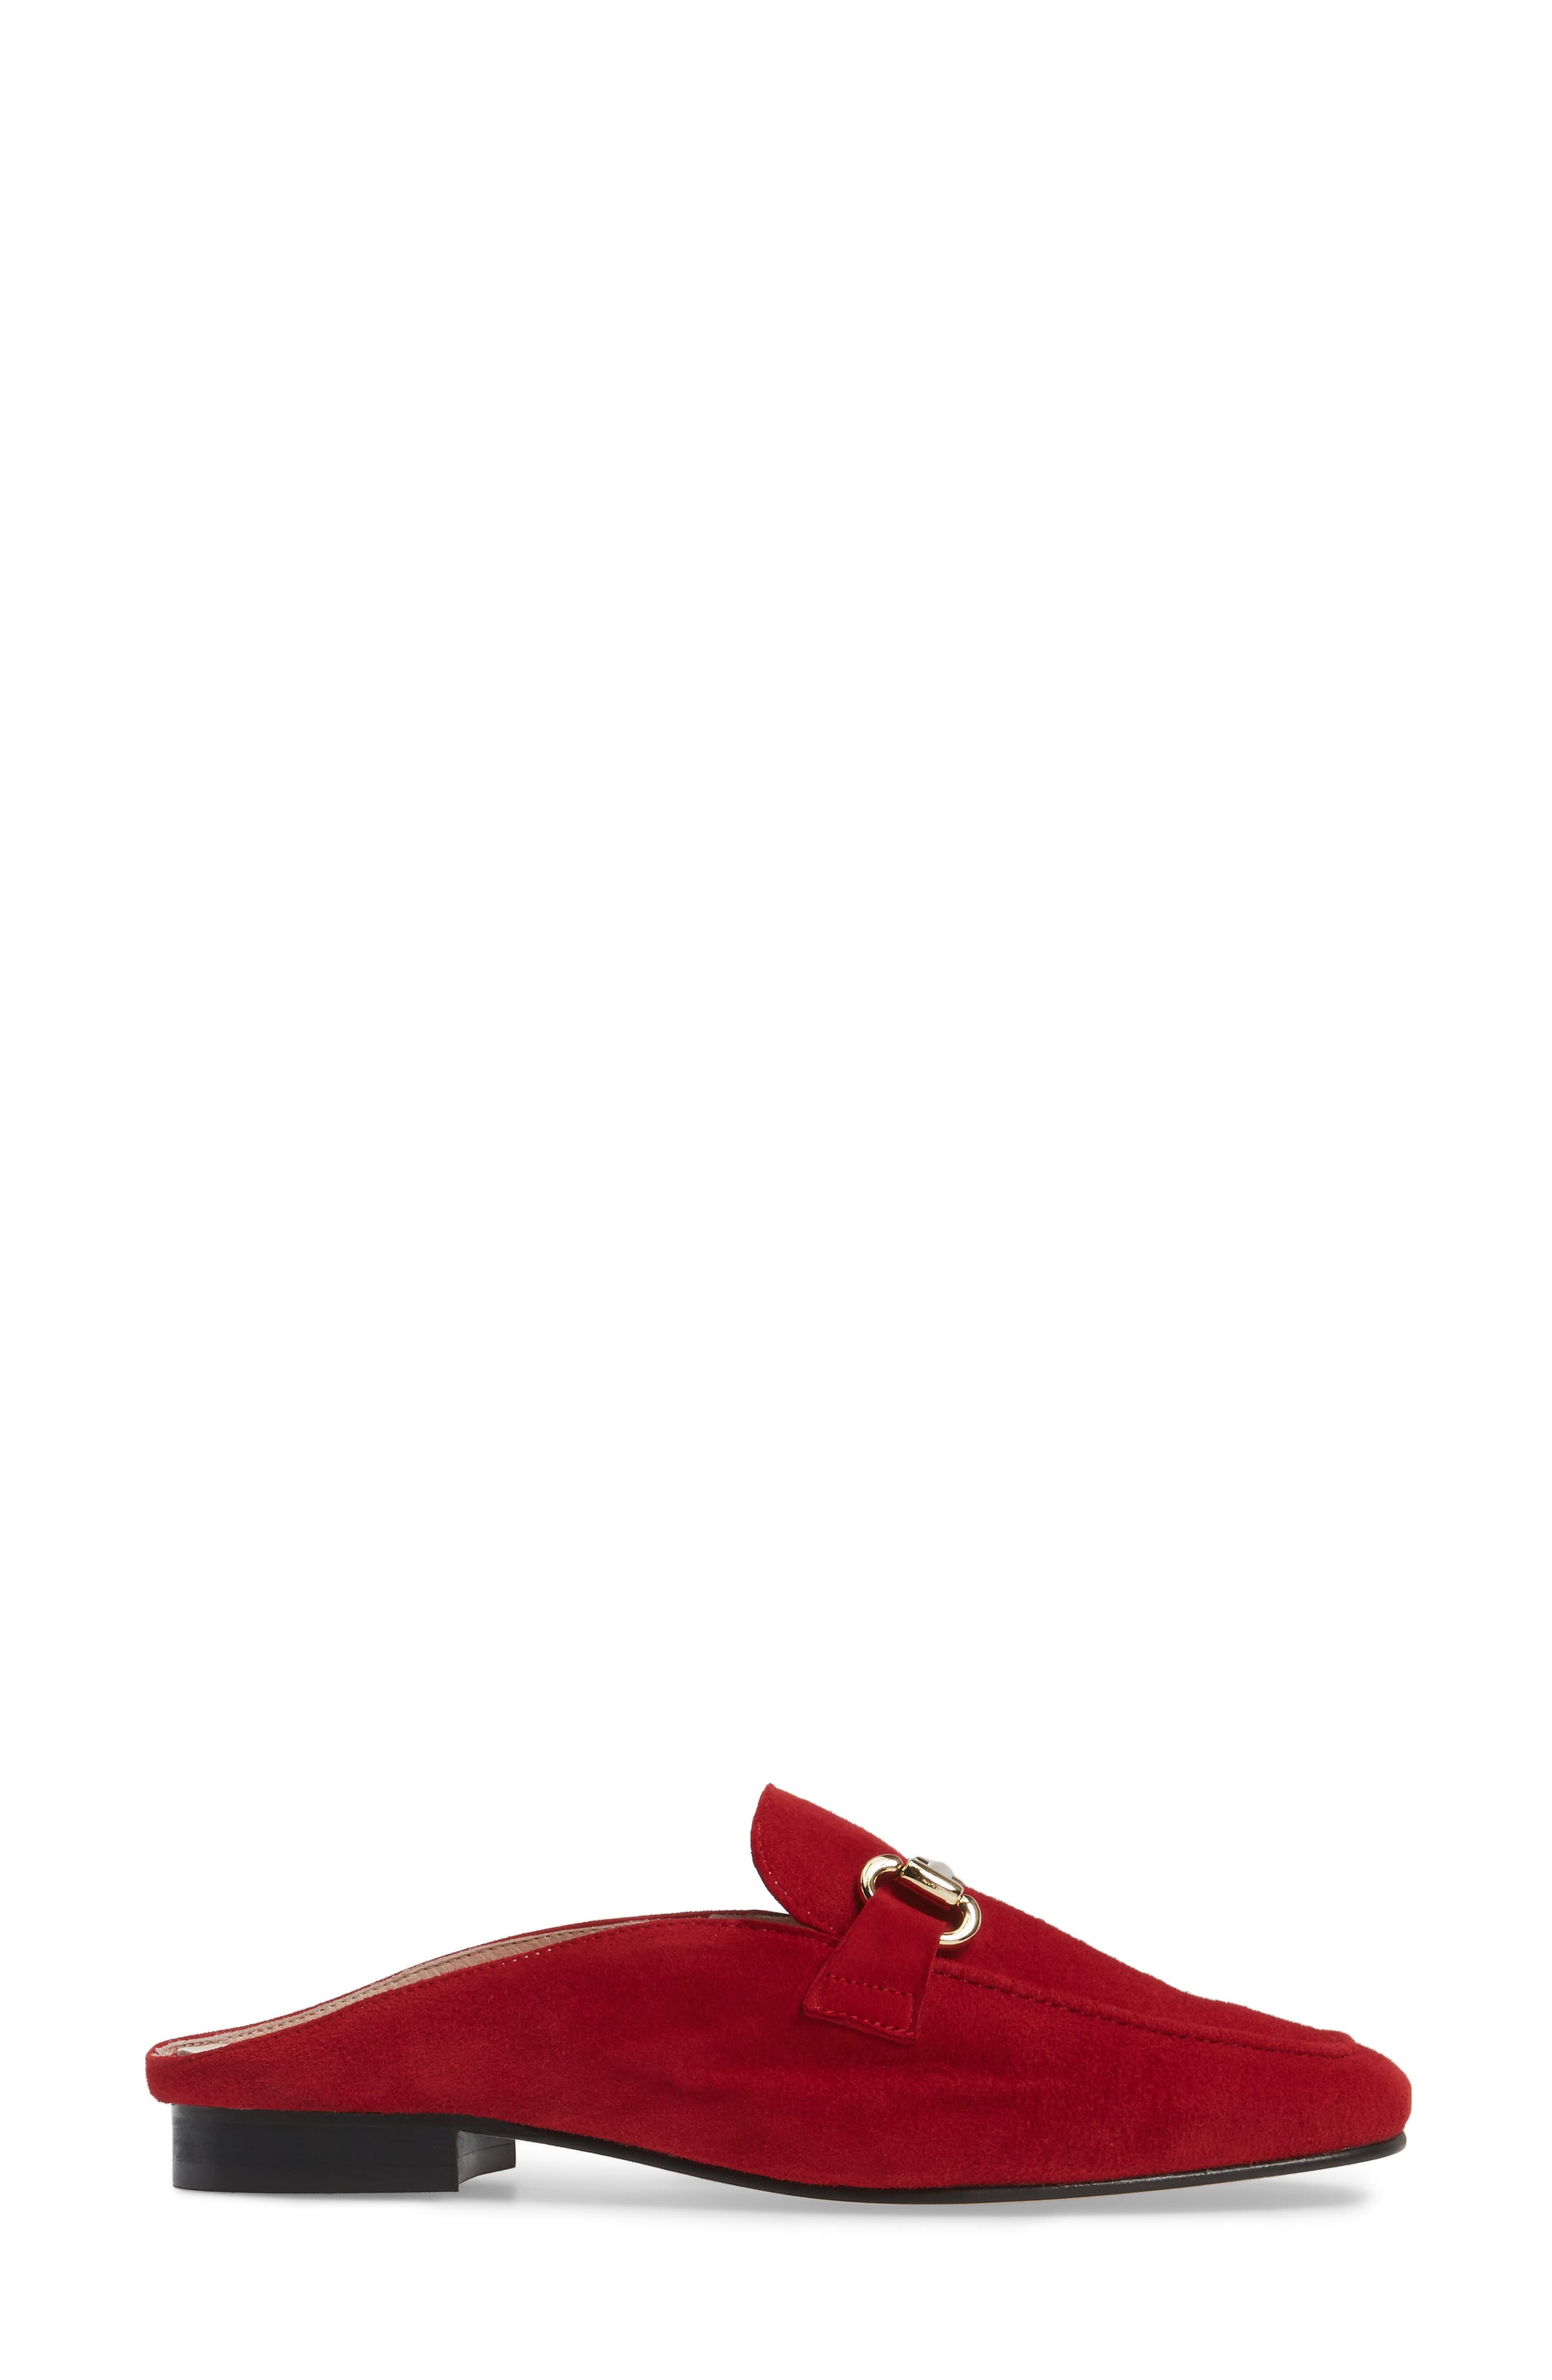 Sorrento Loafer Mule,                             Alternate thumbnail 3, color,                             RED SUEDE